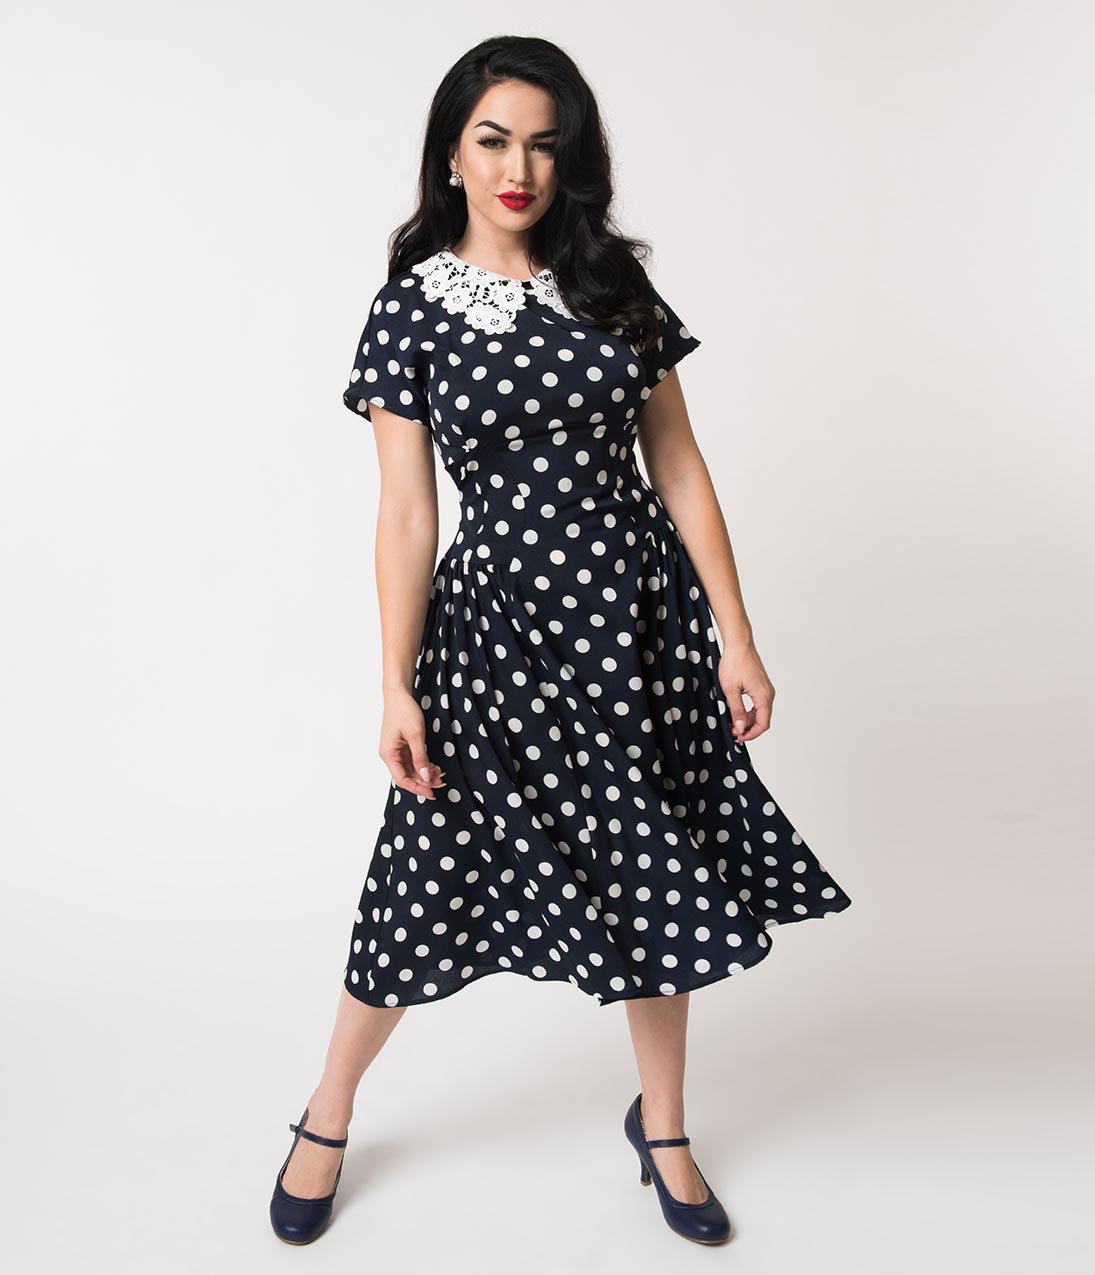 Swing Dance Dresses | Lindy Hop Dresses & Clothing Unique Vintage 1940S Navy  White Polka Dot Lace Collar Margie Dress $41.00 AT vintagedancer.com